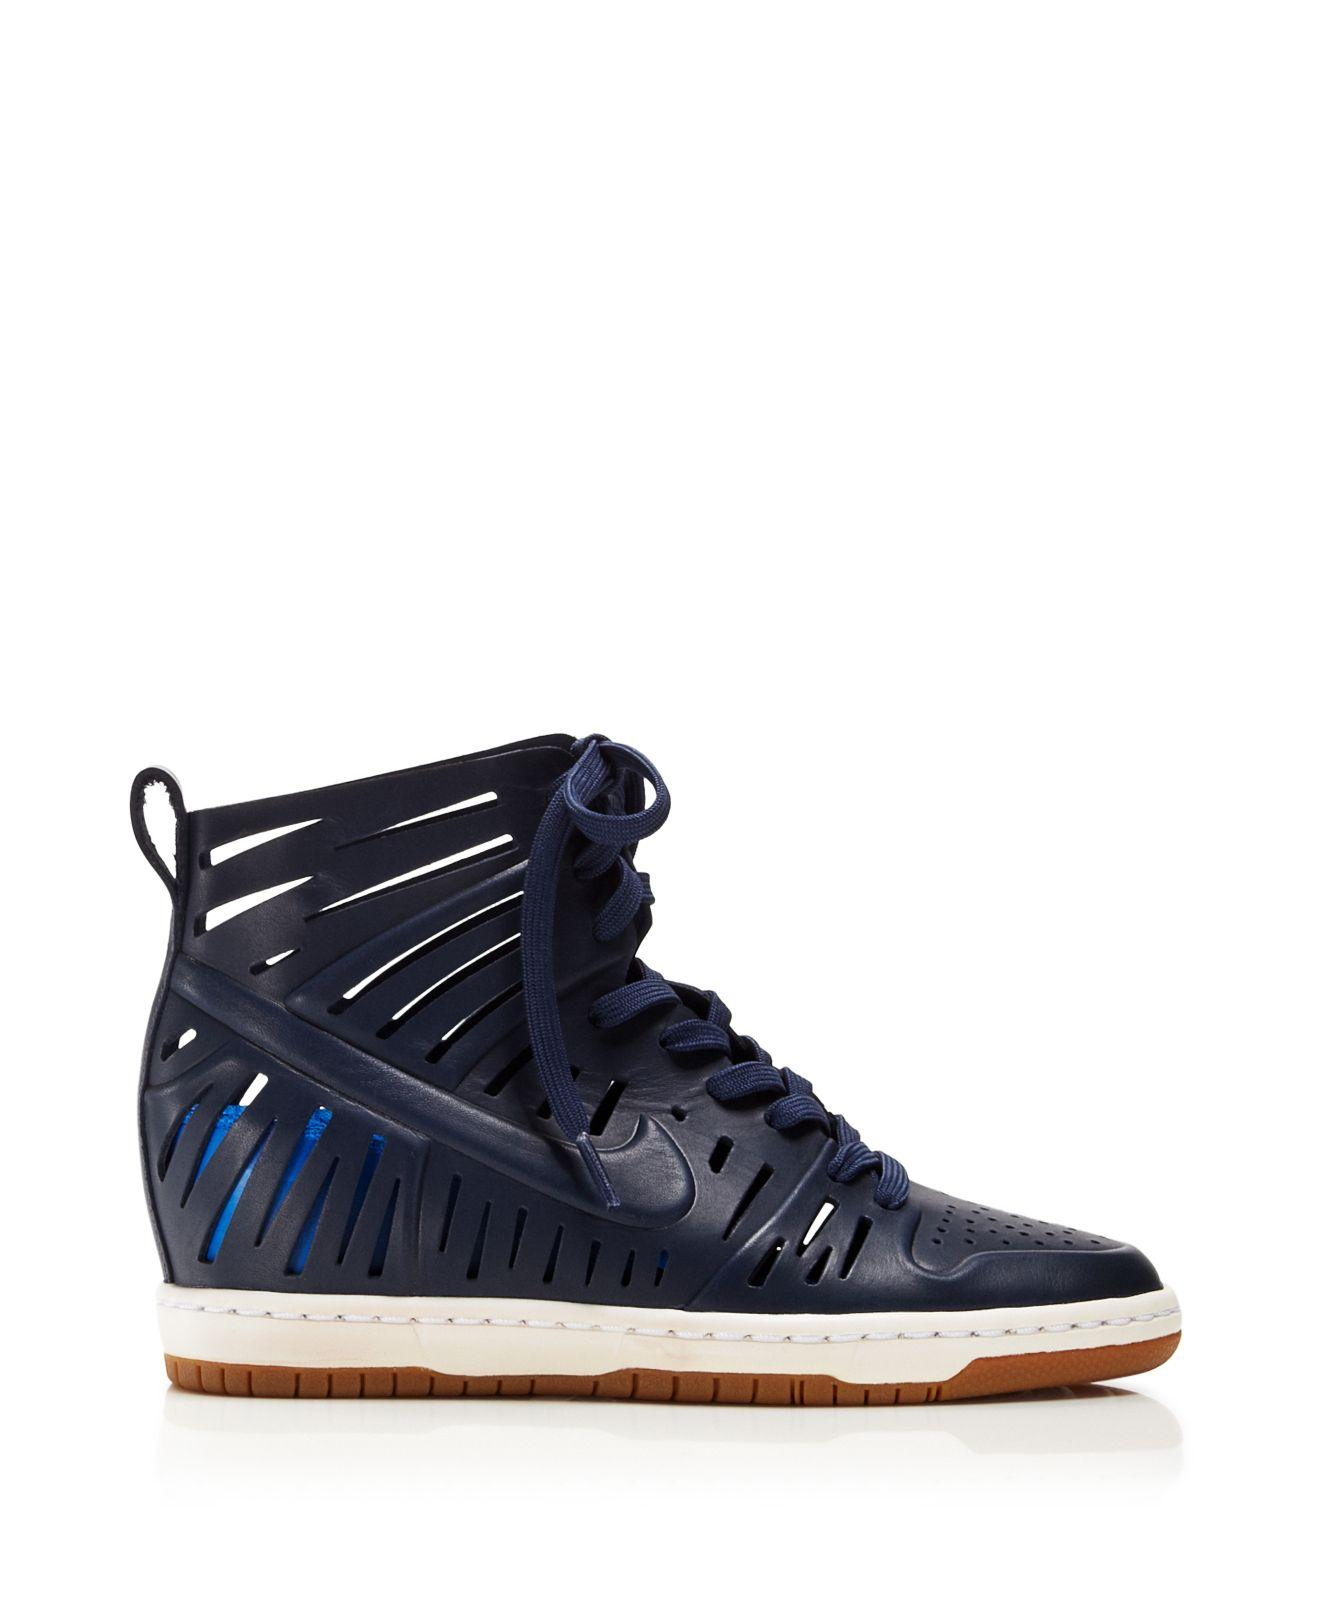 Lyst - Nike Lace Up Wedge Sneakers - Women's Dunk Sky Hi 2 ... Nike Fast Love Sky High Wedge Sneakers